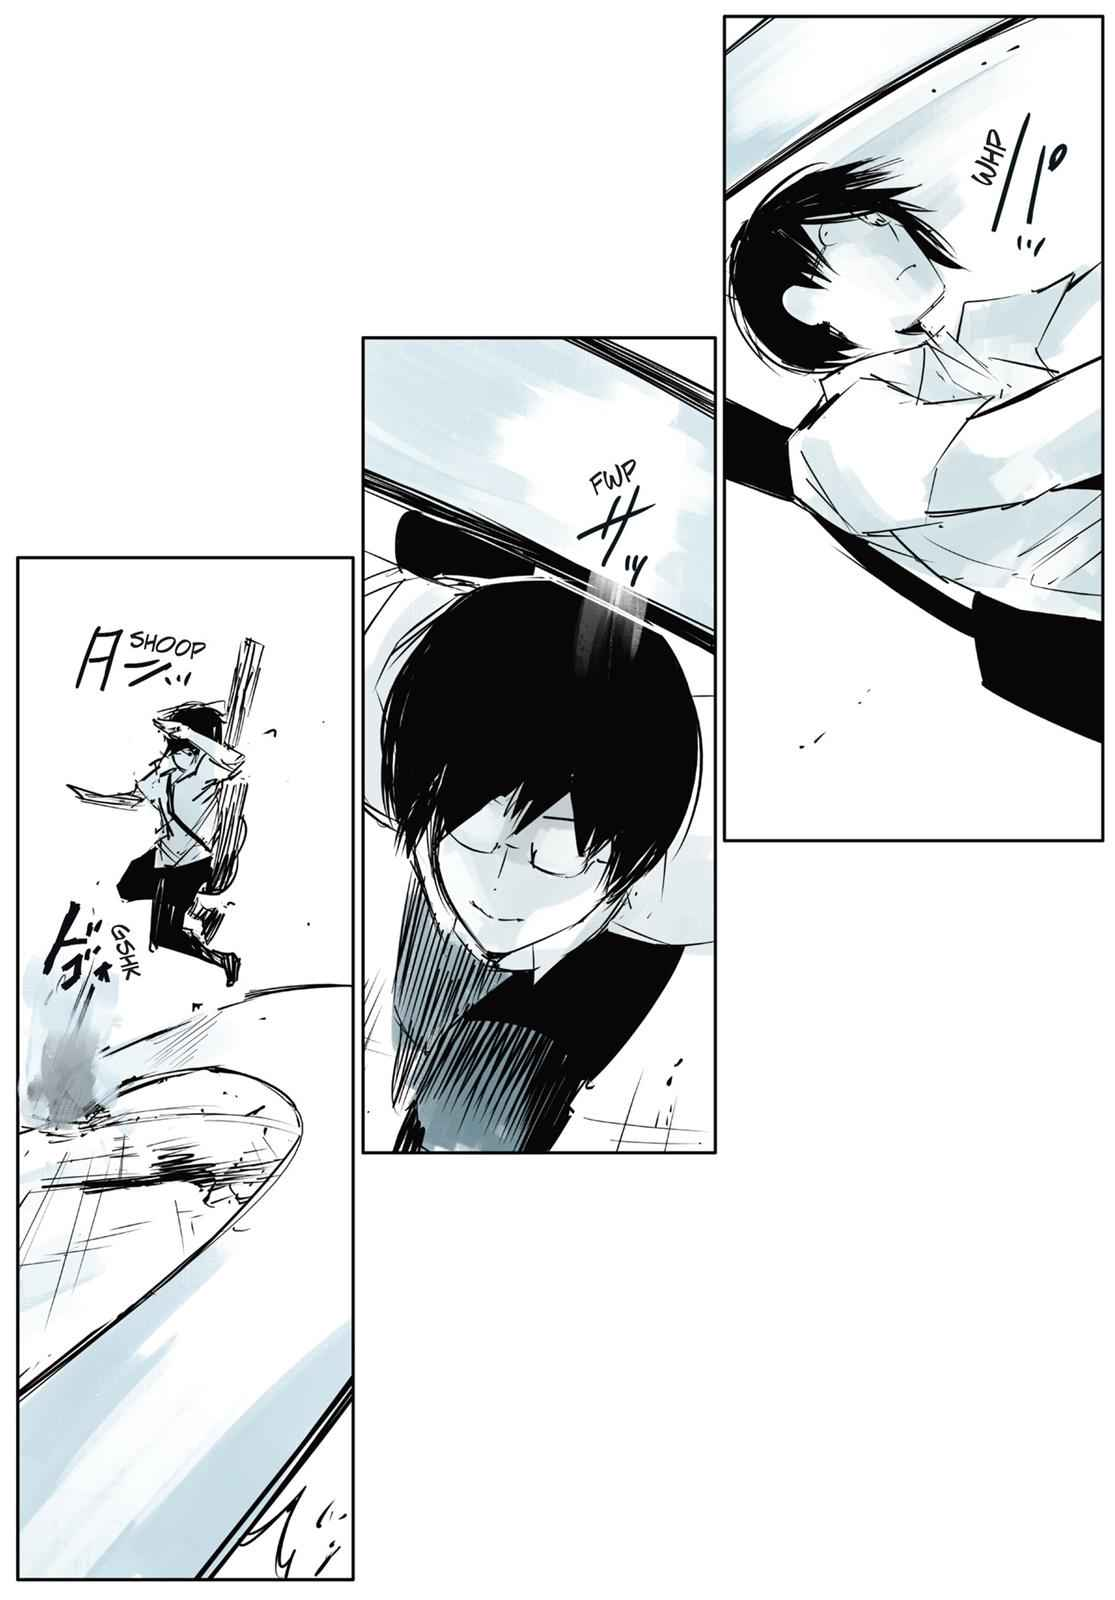 Tokyo Ghoul - Jack Chapter 1 Page 75